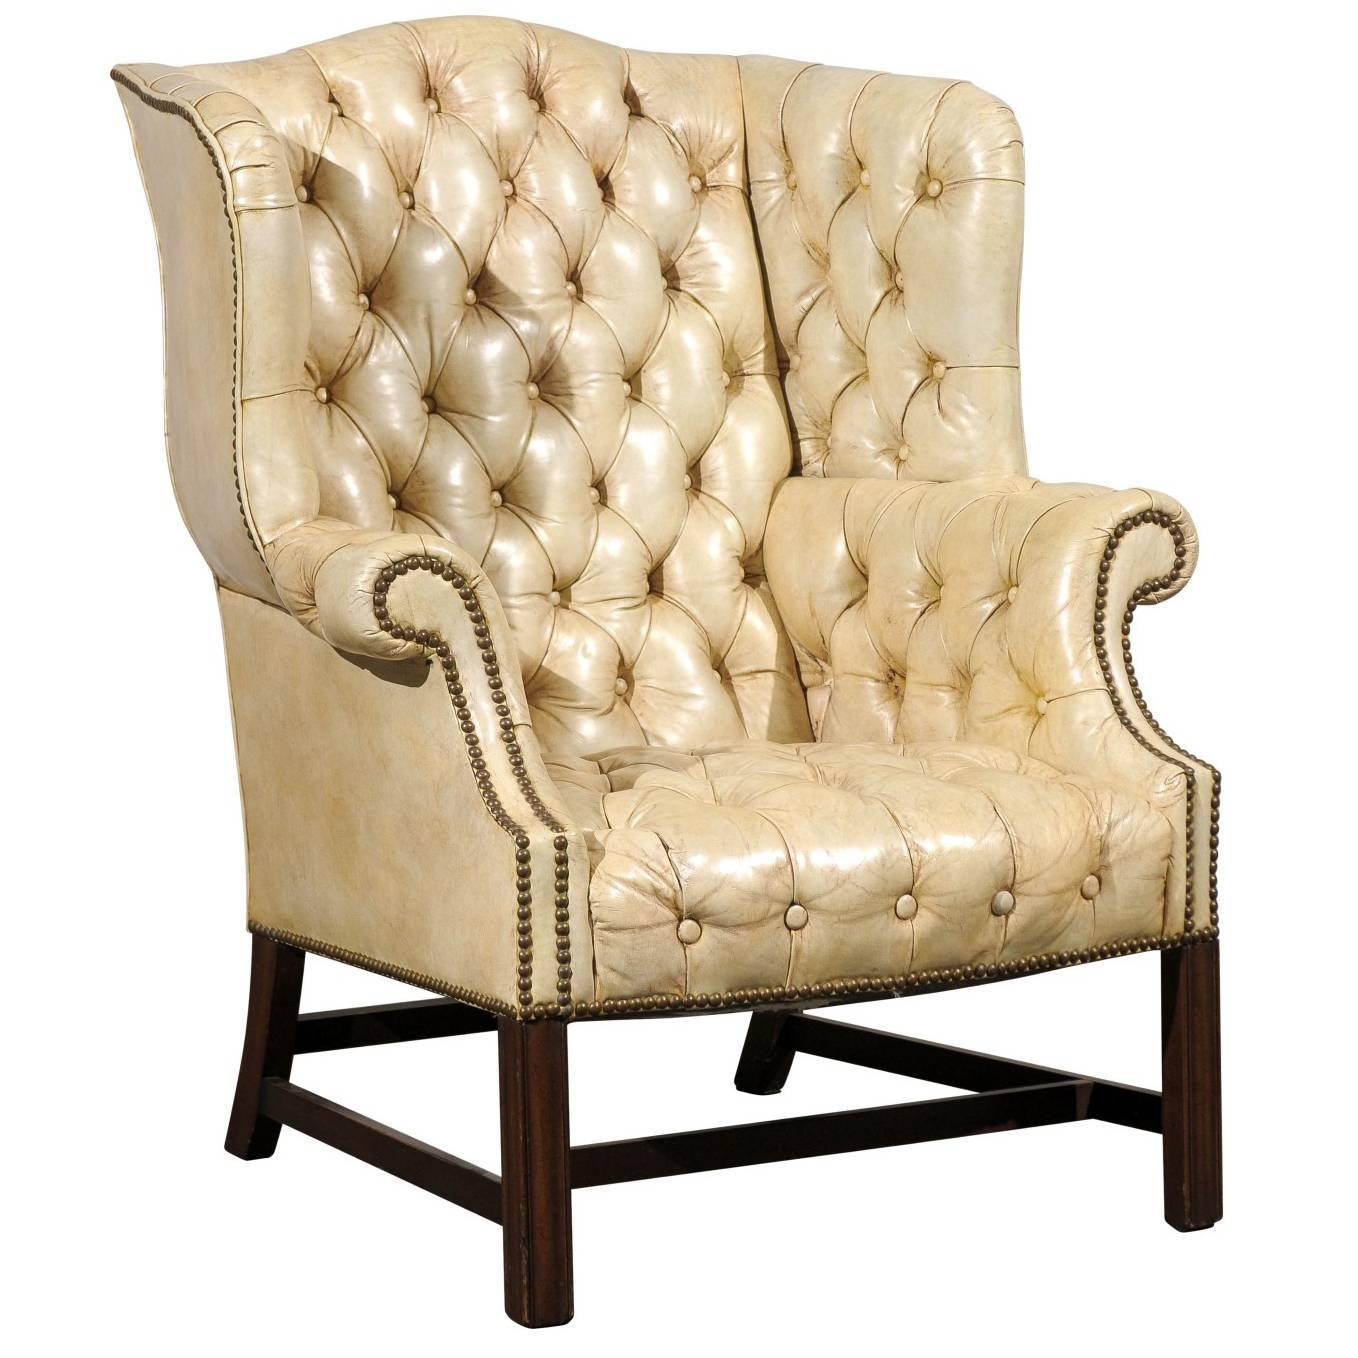 20th Century Tufted Georgian Style Wing Chair White